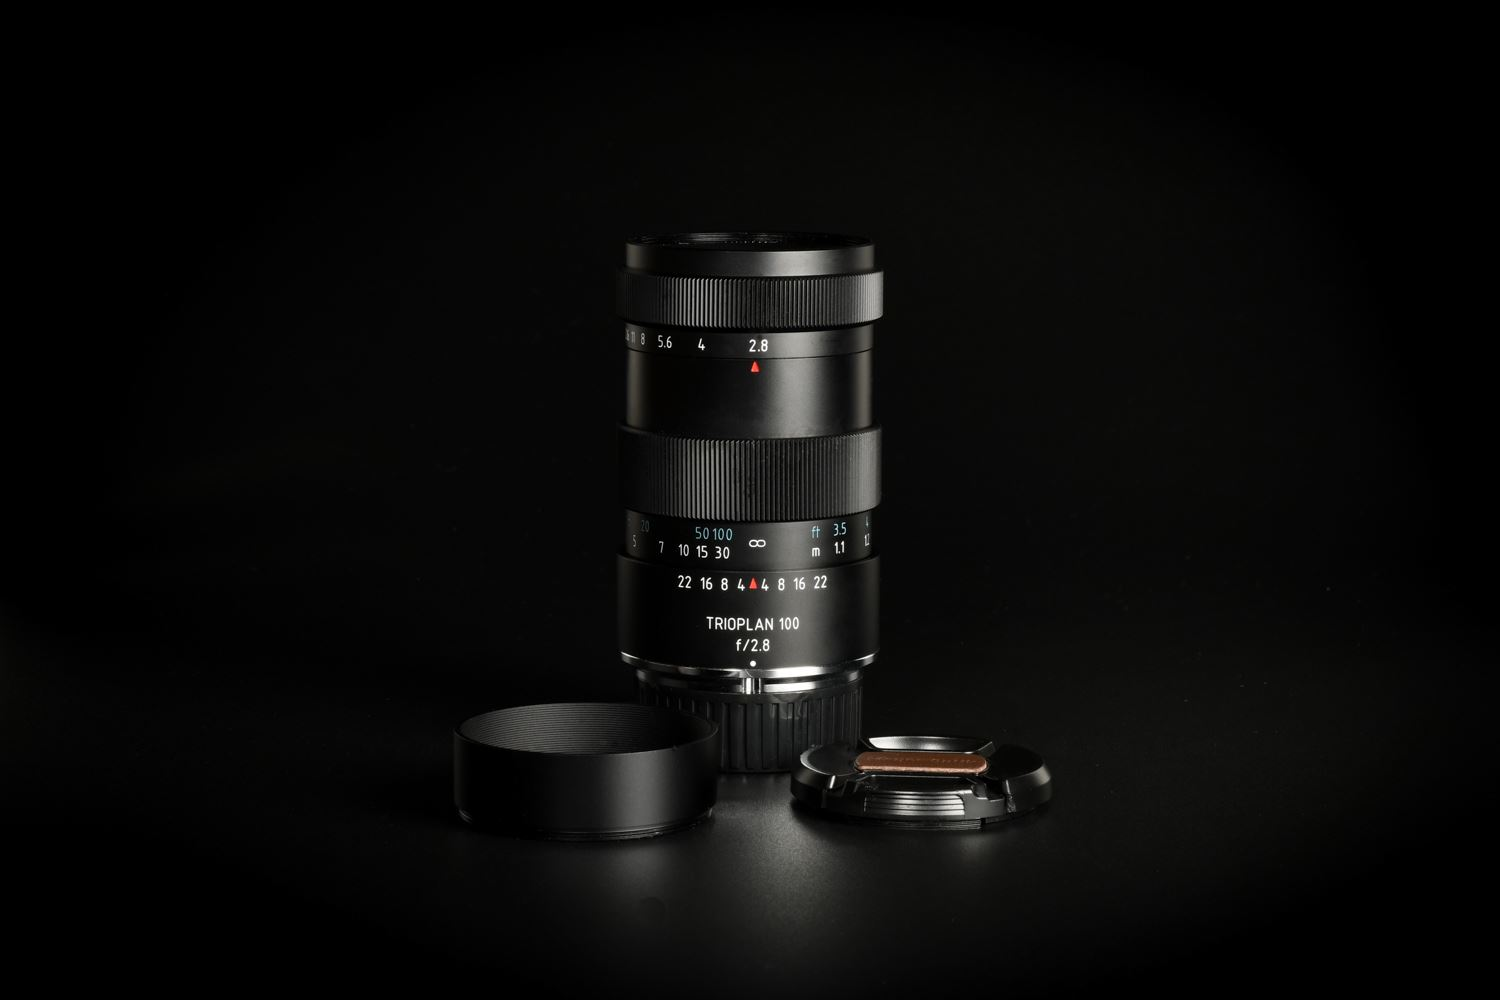 Picture of Meyer Optik Gorlitz Trioplan 100mm f/2.8 Leica M